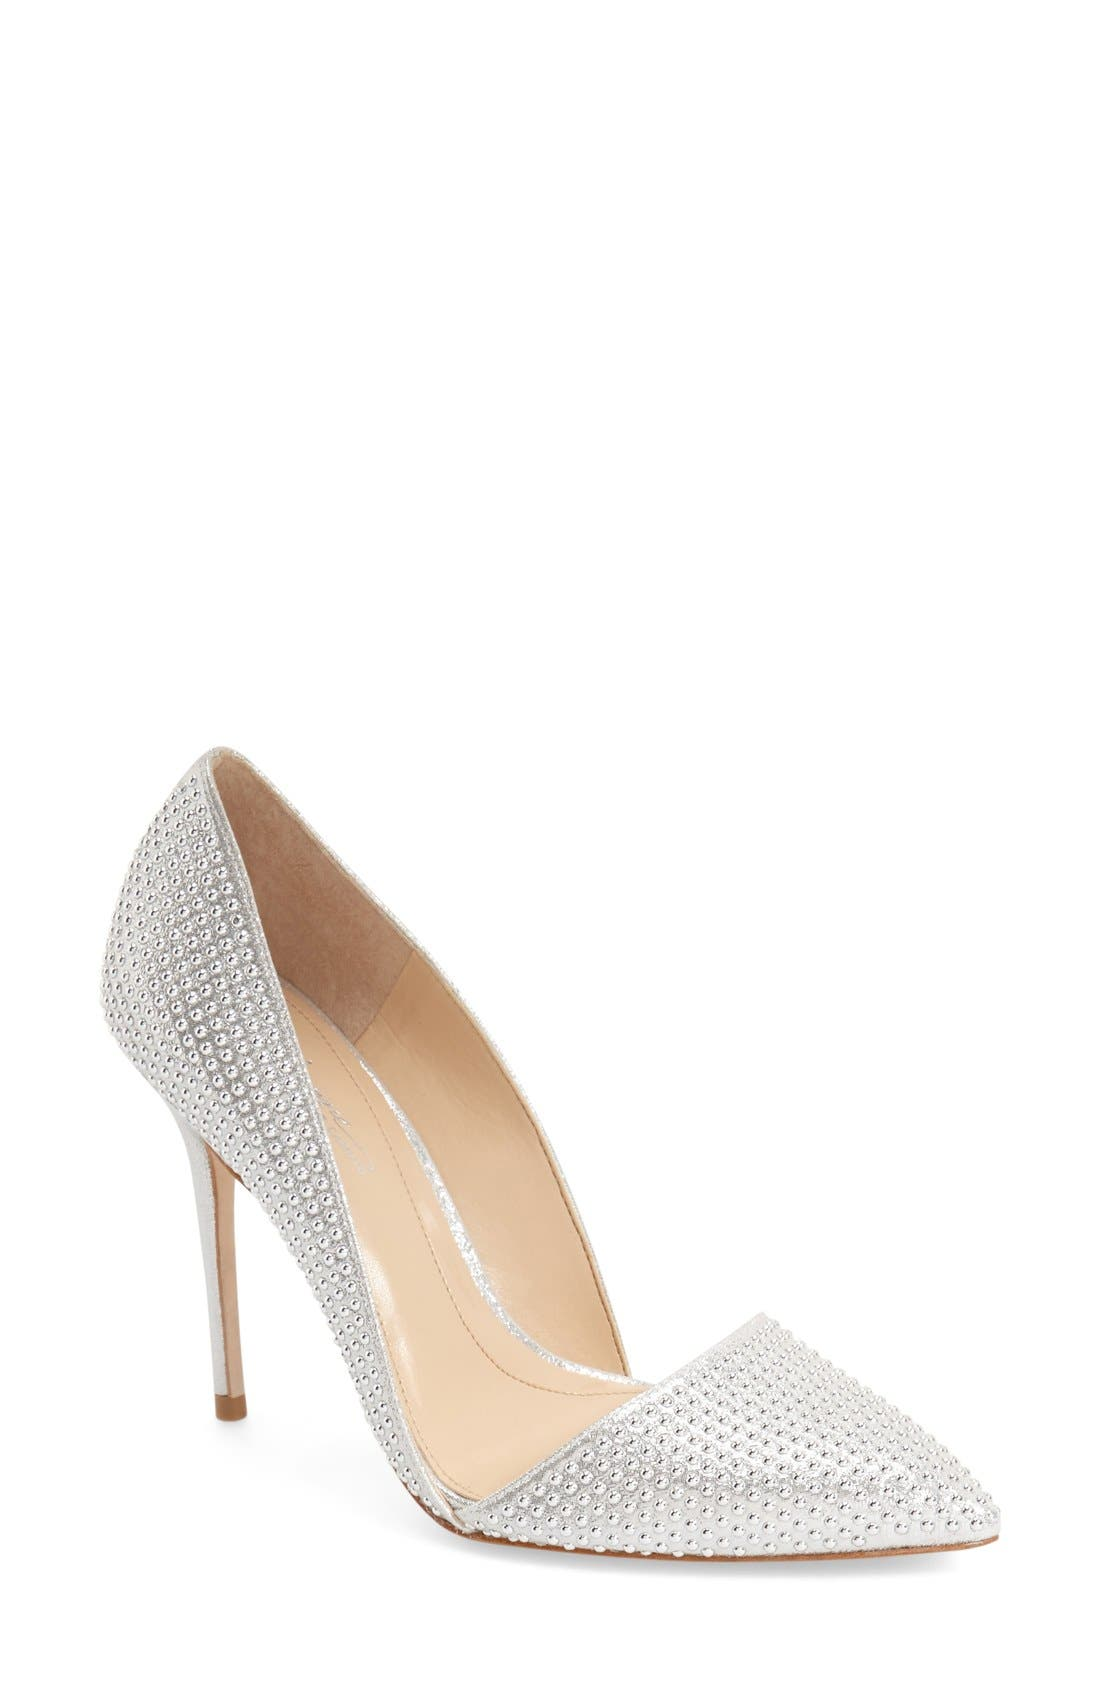 Imagine Vince Camuto 'Ossie' d'Orsay Pump,                             Main thumbnail 1, color,                             Platinum Shimmer